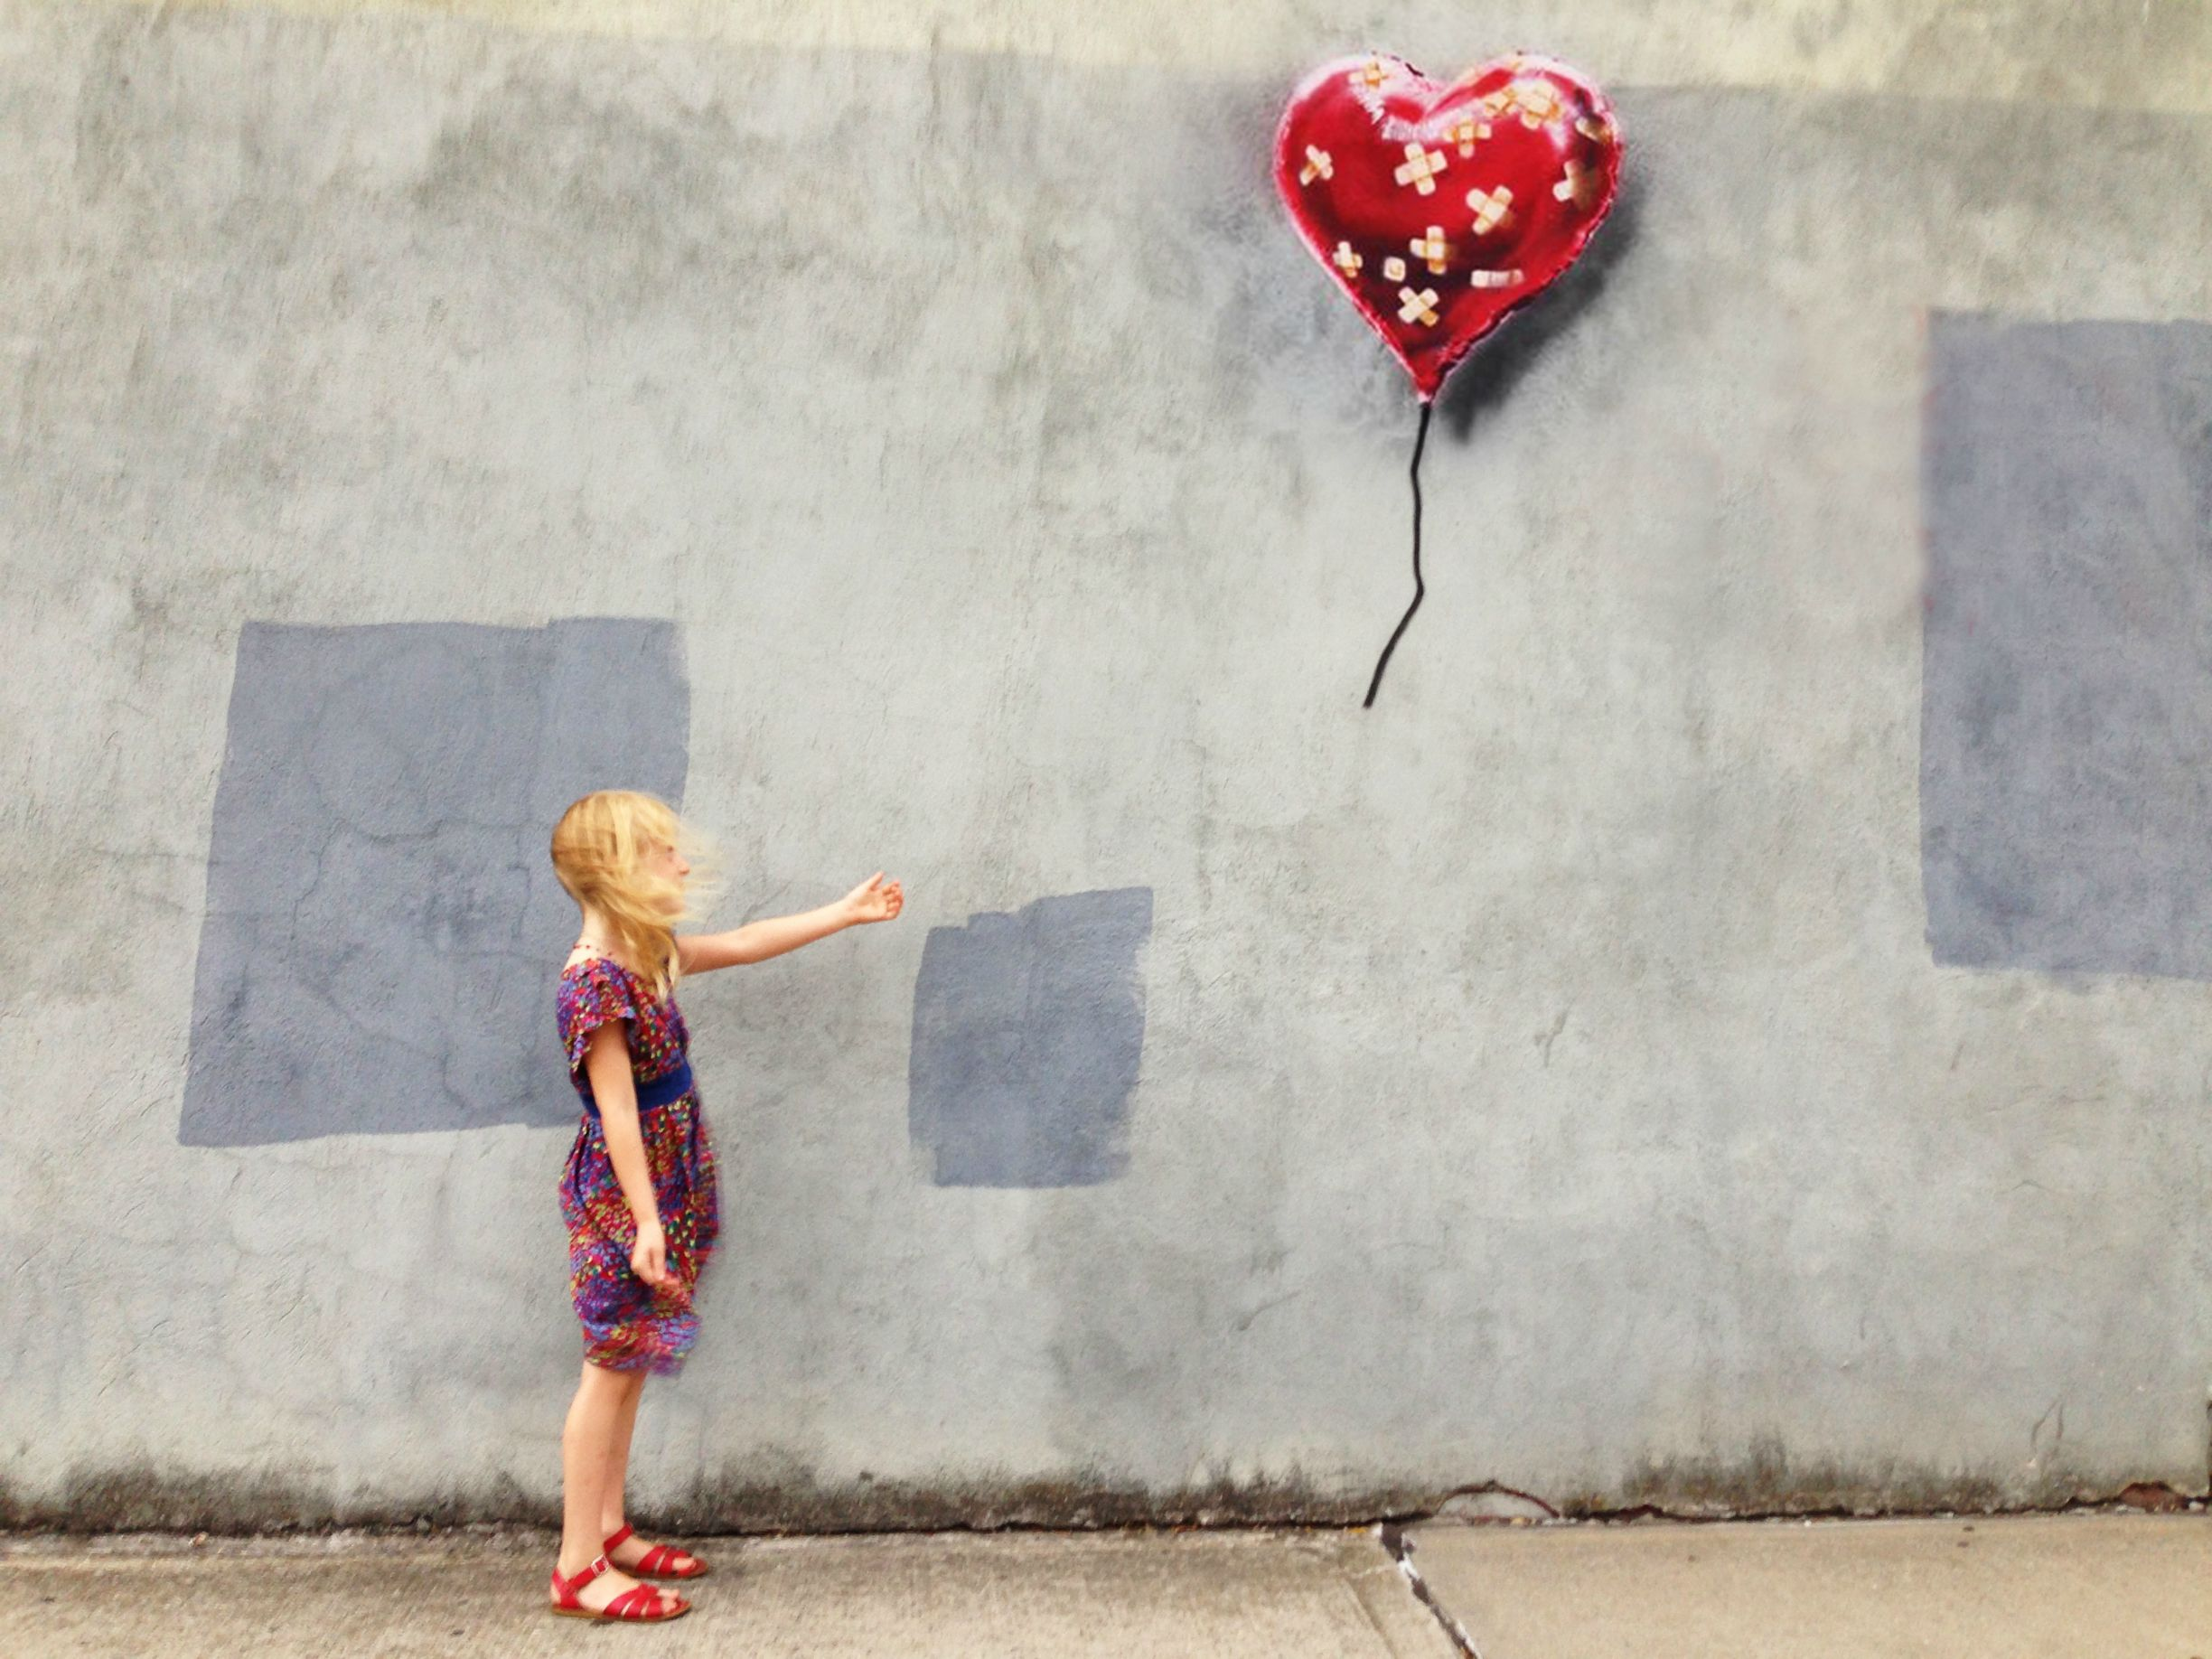 banksy 39 band aid balloon heart 39 found in new york city. Black Bedroom Furniture Sets. Home Design Ideas